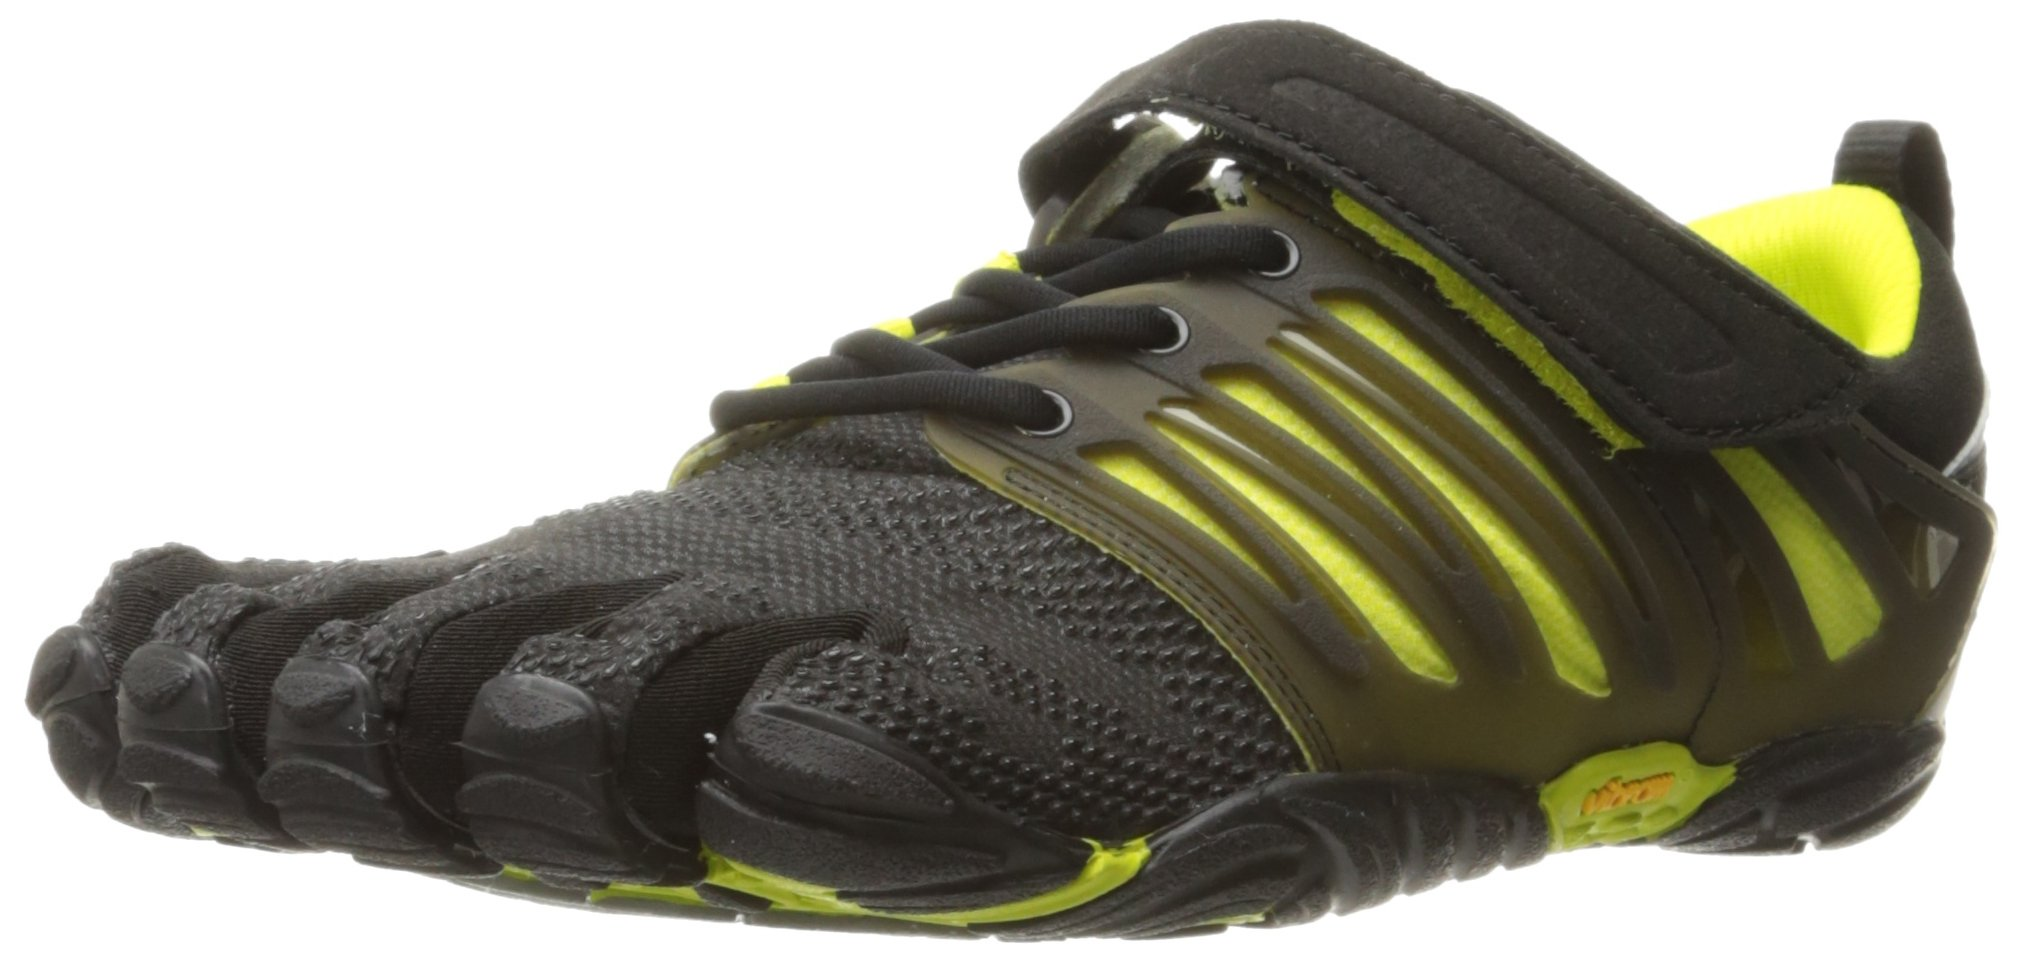 Vibram Men's V-Train Cross-Trainer Shoe, Black/Green, 49 EU by Vibram